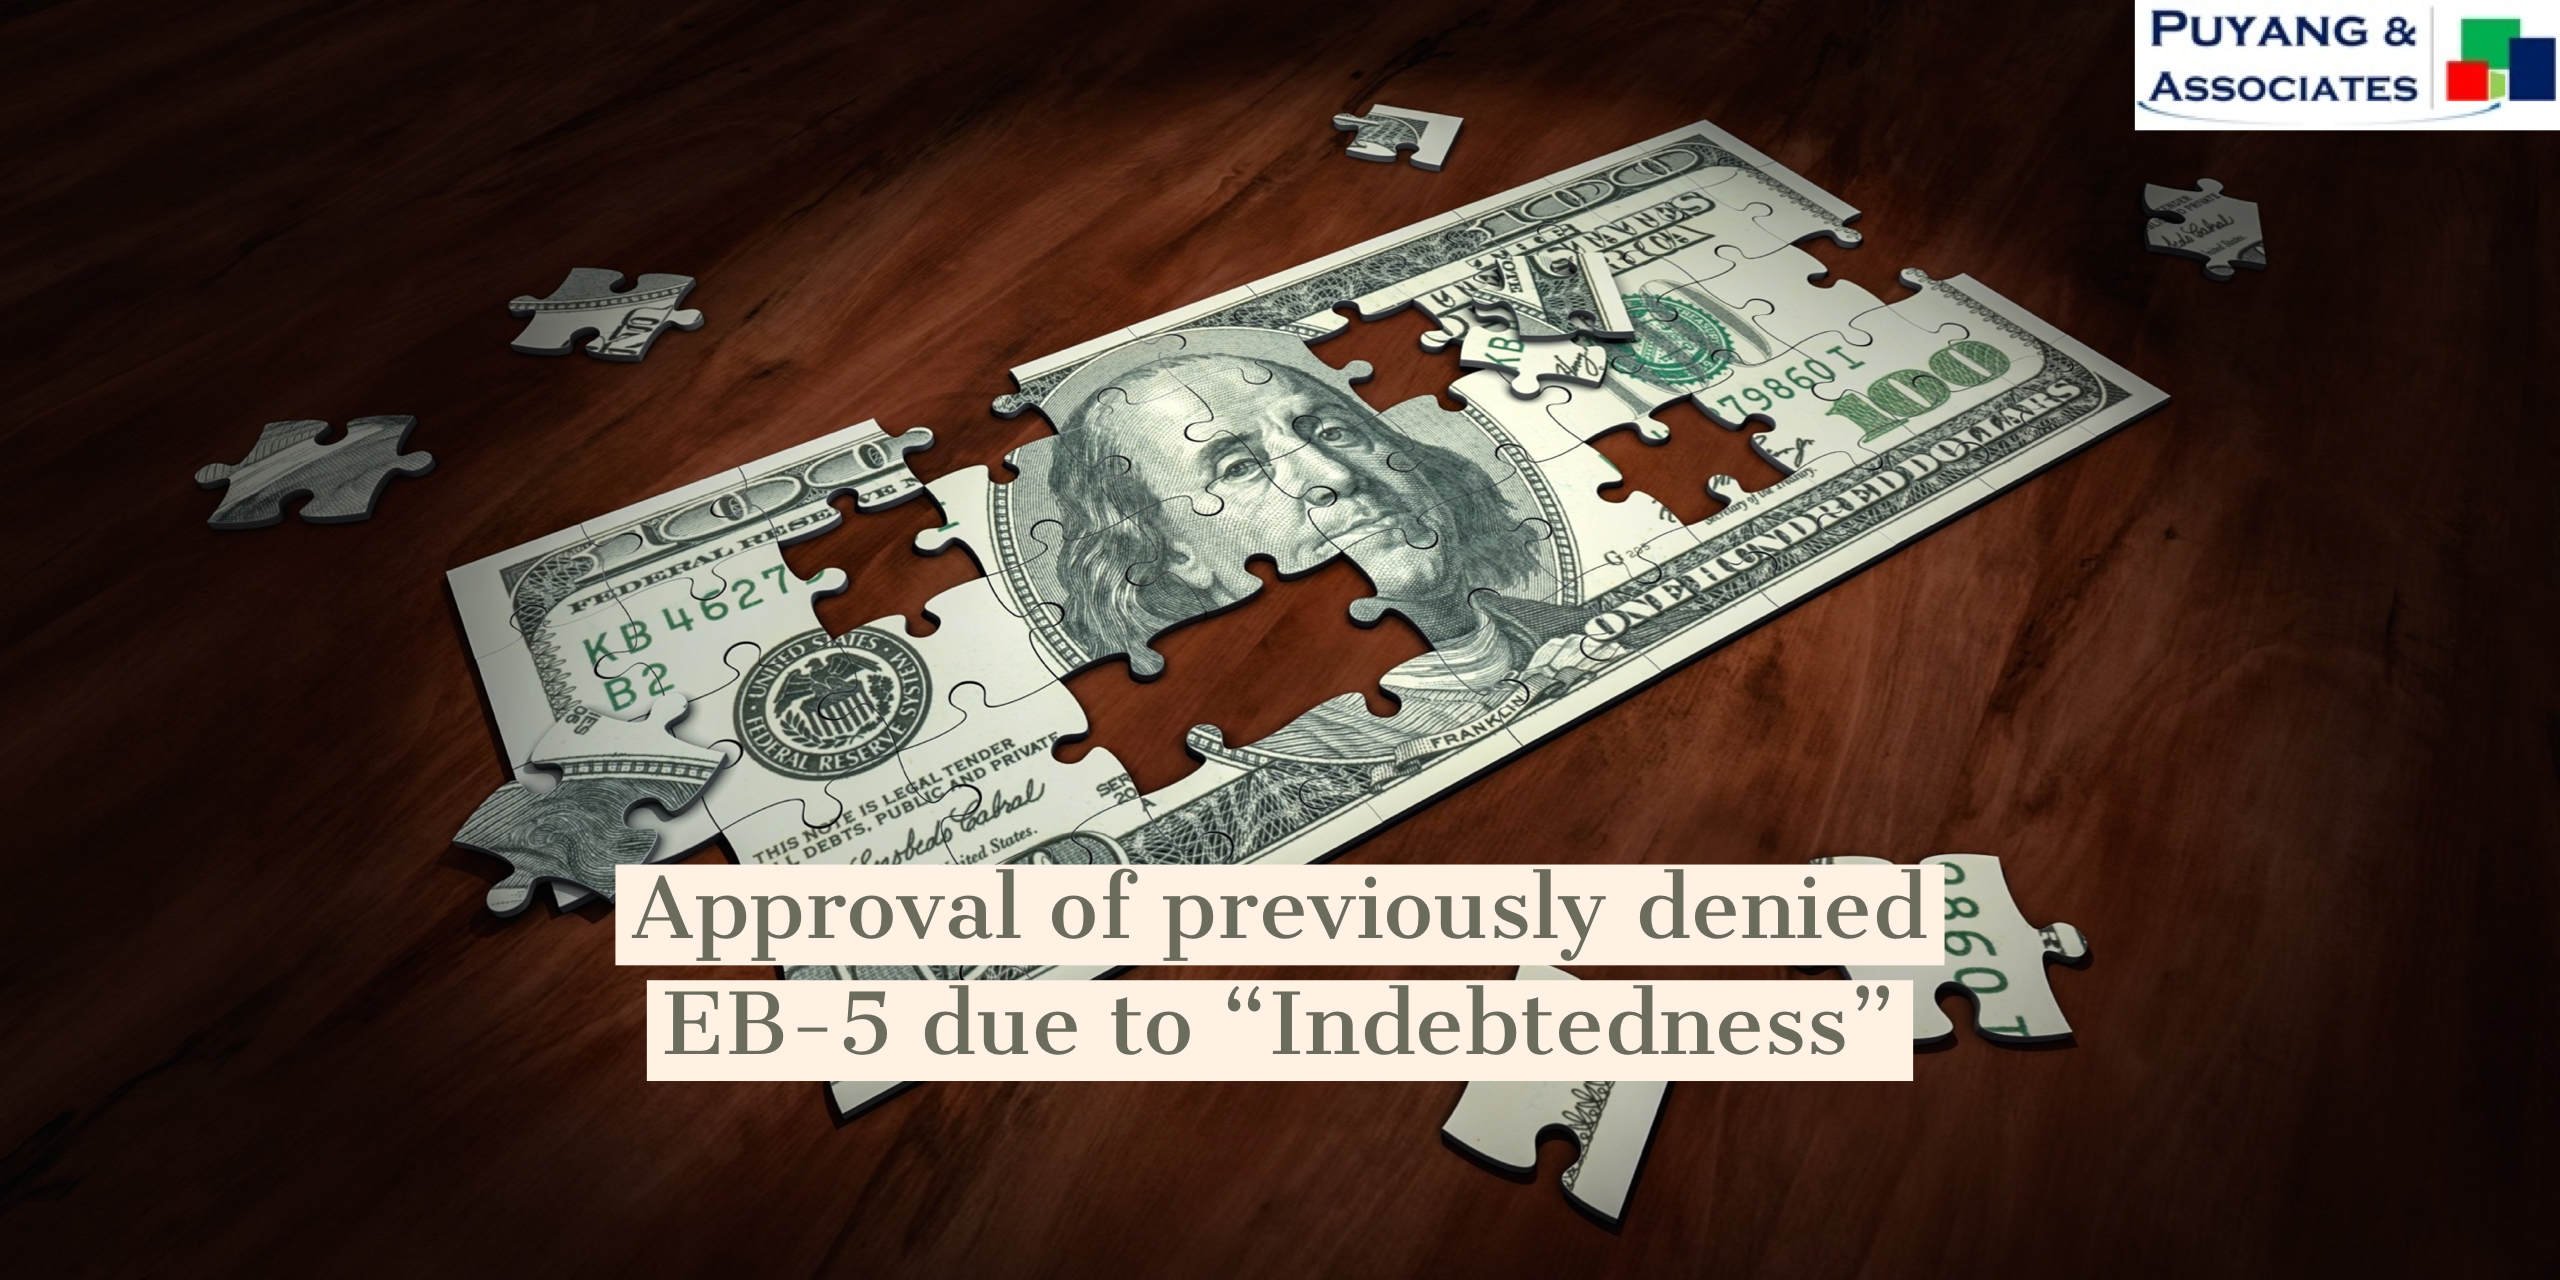 """Approval of Previously Denied EB-5 due to """"Indebtedness"""""""